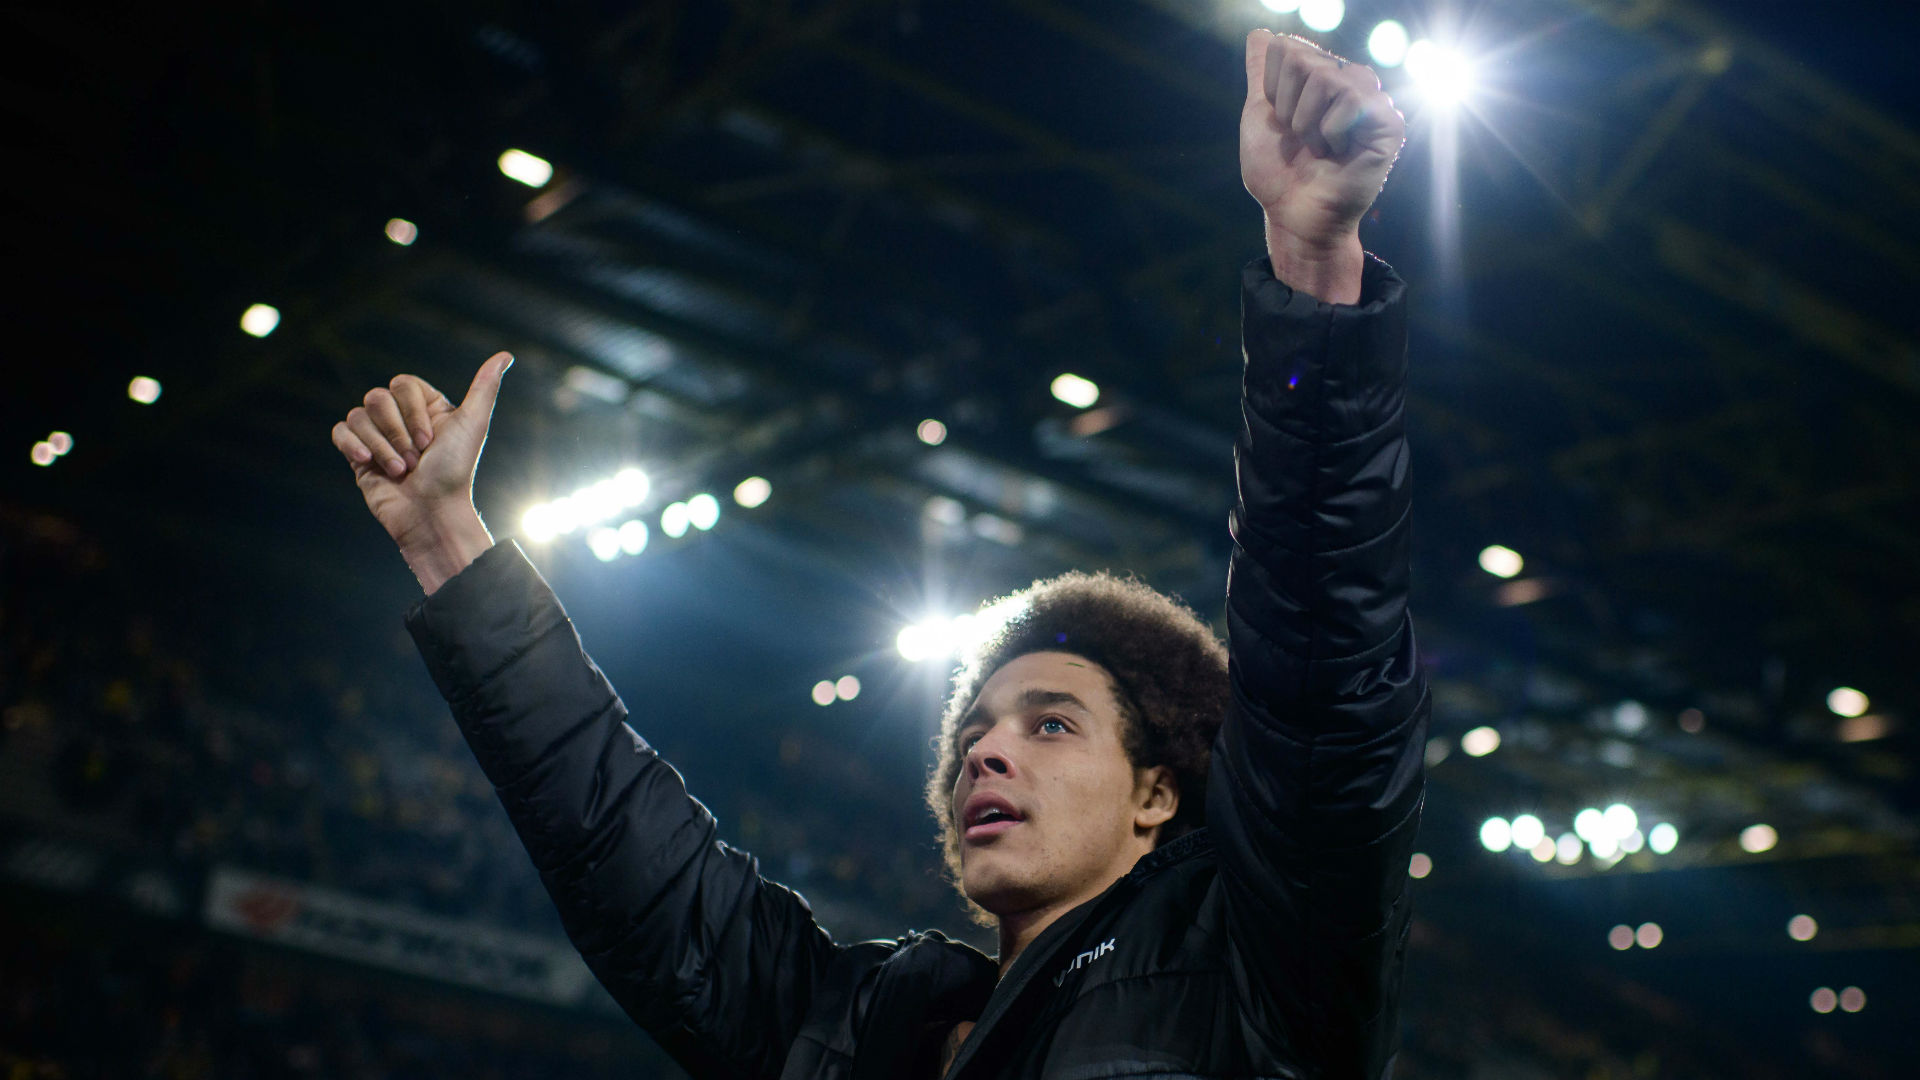 Real Madrid, Juventus, Manchester United and PSG all could have signed Dortmund's Witsel